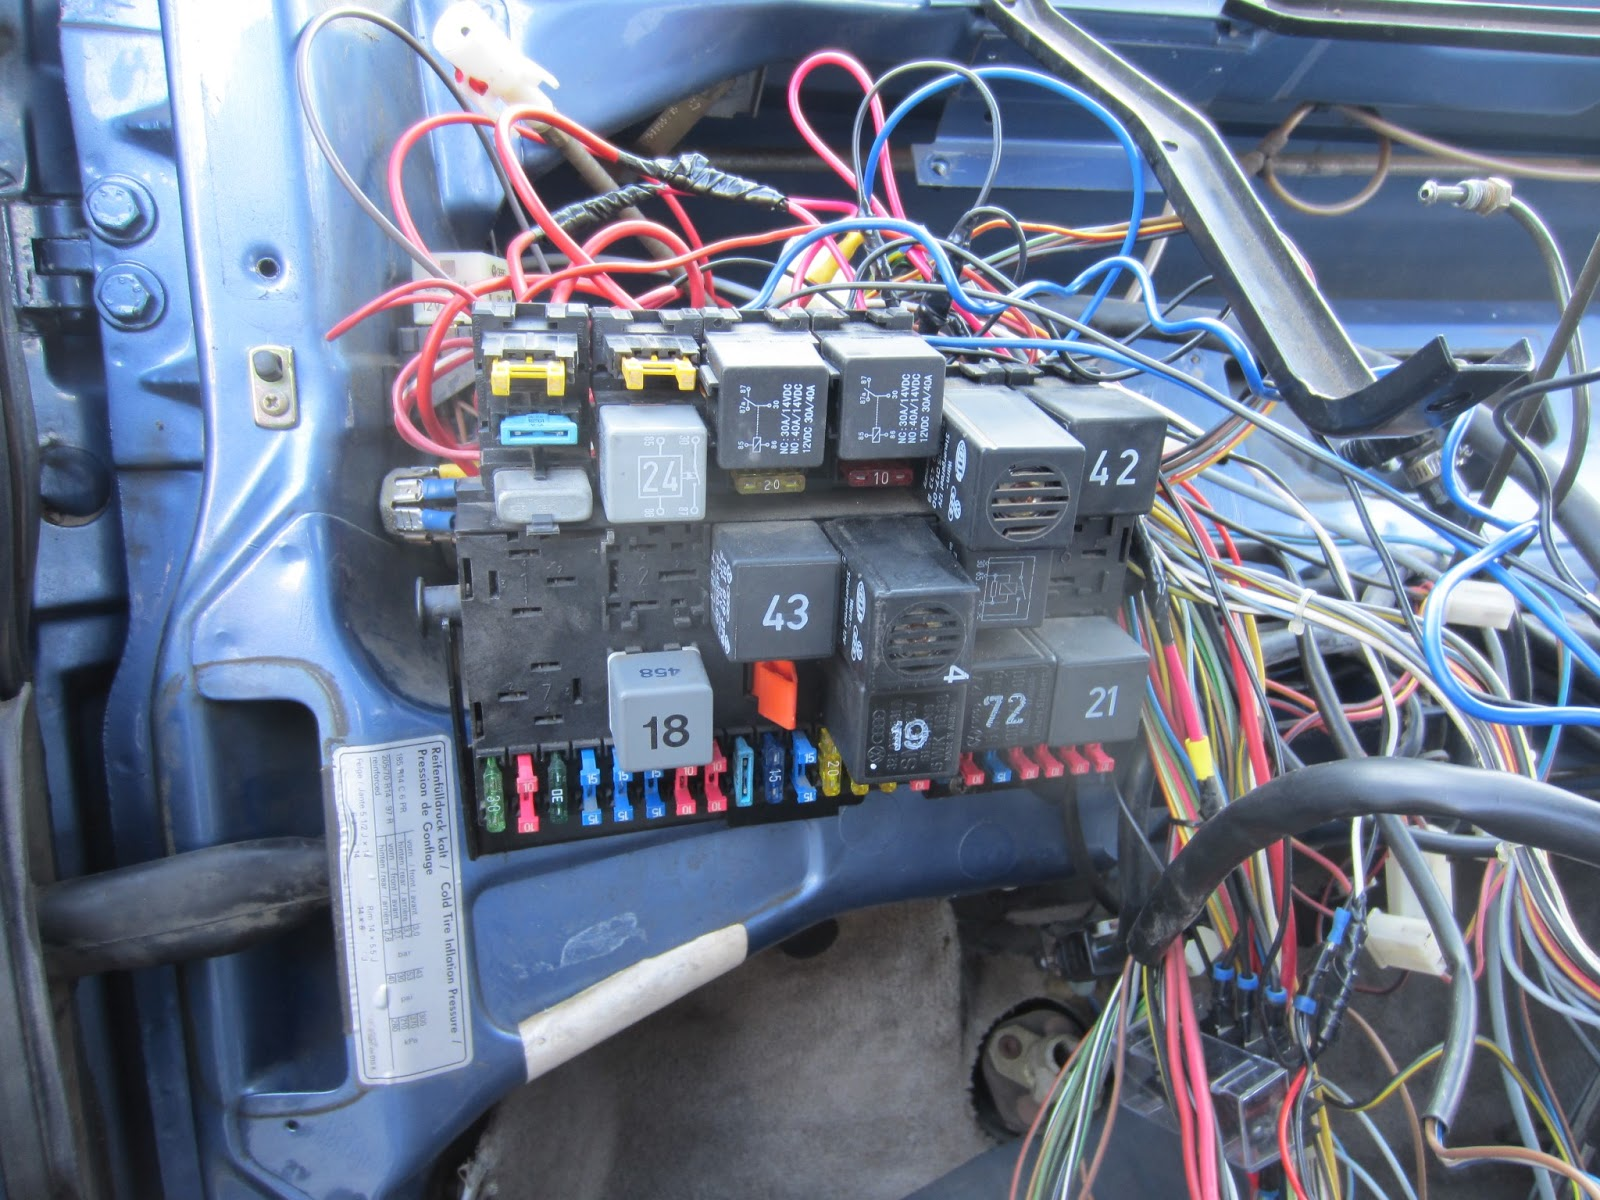 1982 Vanagon Fuse Diagram Wiring Library 4300 Together With 1988 Toyota Pickup Starter Relay 1985 Heater Charging System 1999 Gmc 2003 International